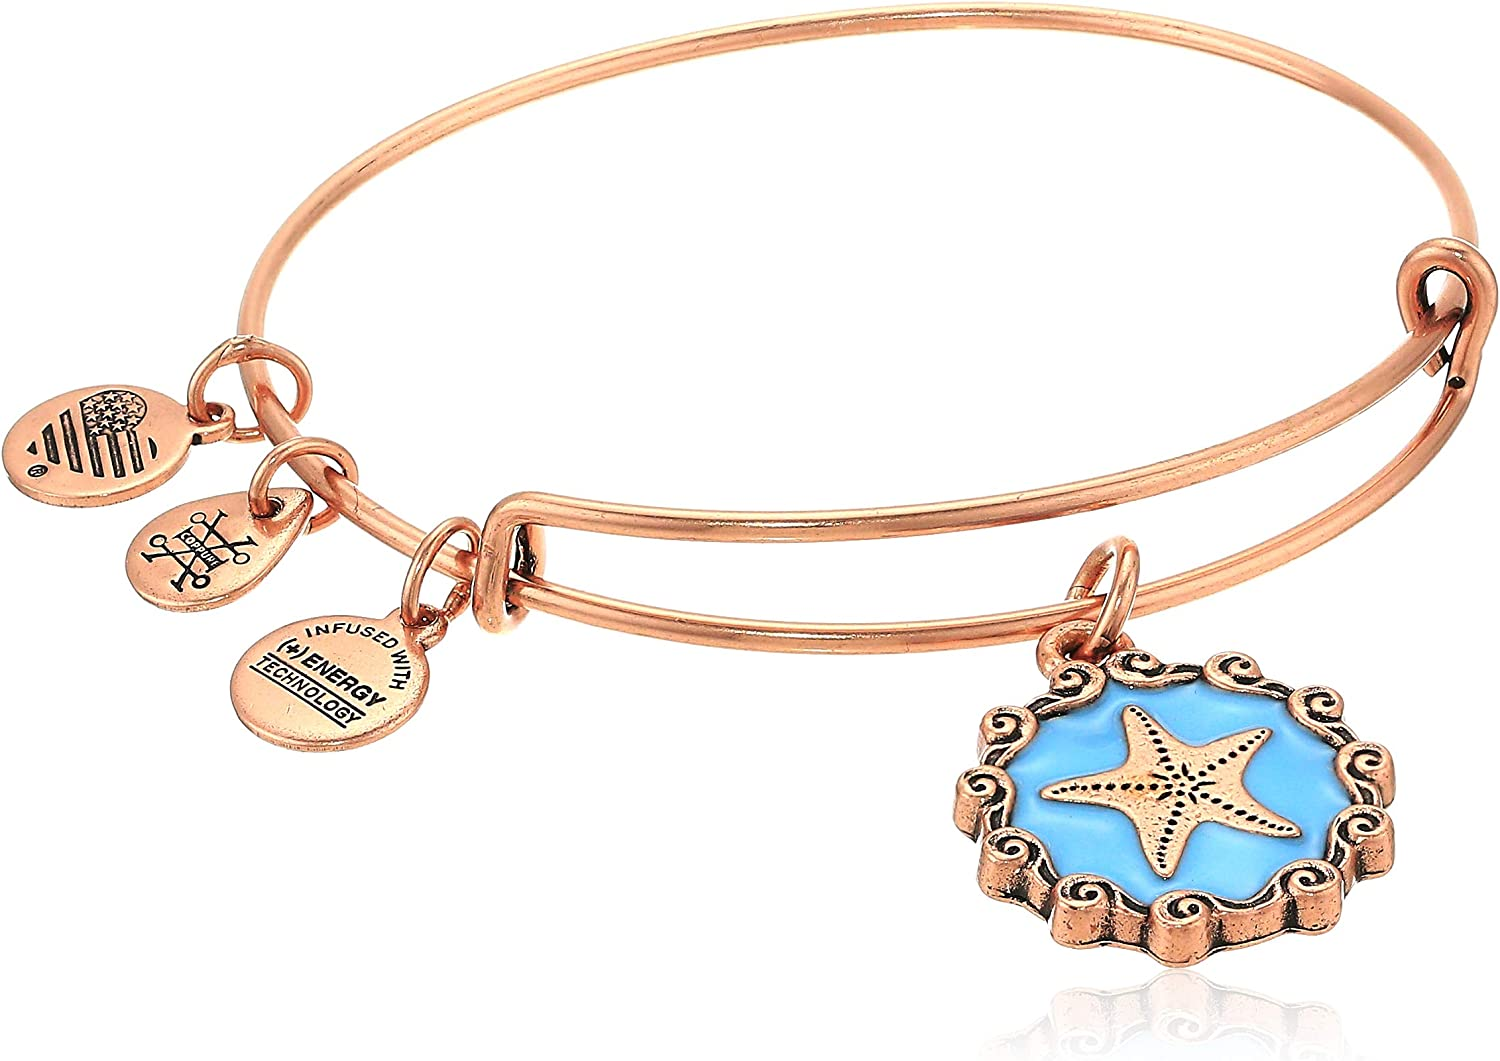 Alex Challenge the Outlet SALE lowest price of Japan and Ani Women's Color Infusion Star Fish Charm Brac Bangle